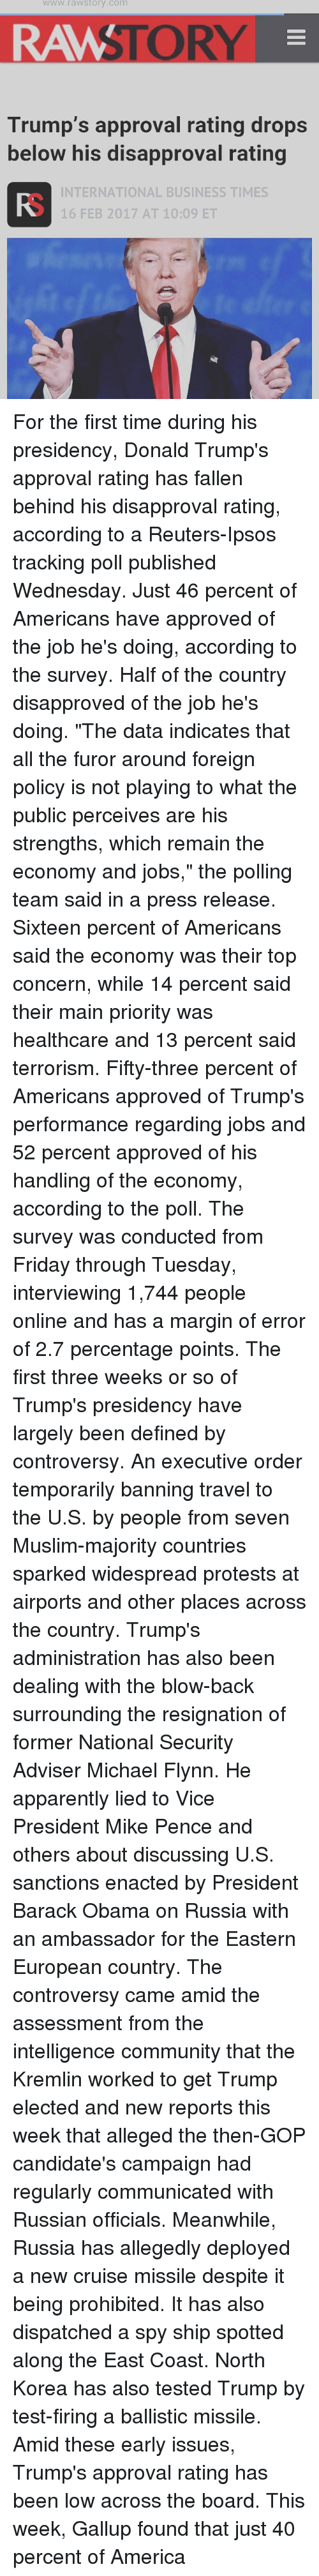 """Trump Approval Rating: WWW.raW Story Comm  Trump's approval rating drops  below his disapproval rating  INTERNATIONAL BUSINESS TIMES  16 FEB 2017 AT 10:09 ET For the first time during his presidency, Donald Trump's approval rating has fallen behind his disapproval rating, according to a Reuters-Ipsos tracking poll published Wednesday. Just 46 percent of Americans have approved of the job he's doing, according to the survey. Half of the country disapproved of the job he's doing. """"The data indicates that all the furor around foreign policy is not playing to what the public perceives are his strengths, which remain the economy and jobs,"""" the polling team said in a press release. Sixteen percent of Americans said the economy was their top concern, while 14 percent said their main priority was healthcare and 13 percent said terrorism. Fifty-three percent of Americans approved of Trump's performance regarding jobs and 52 percent approved of his handling of the economy, according to the poll. The survey was conducted from Friday through Tuesday, interviewing 1,744 people online and has a margin of error of 2.7 percentage points. The first three weeks or so of Trump's presidency have largely been defined by controversy. An executive order temporarily banning travel to the U.S. by people from seven Muslim-majority countries sparked widespread protests at airports and other places across the country. Trump's administration has also been dealing with the blow-back surrounding the resignation of former National Security Adviser Michael Flynn. He apparently lied to Vice President Mike Pence and others about discussing U.S. sanctions enacted by President Barack Obama on Russia with an ambassador for the Eastern European country. The controversy came amid the assessment from the intelligence community that the Kremlin worked to get Trump elected and new reports this week that alleged the then-GOP candidate's campaign had regularly communicated with Russian officials. Meanwhile, Ru"""